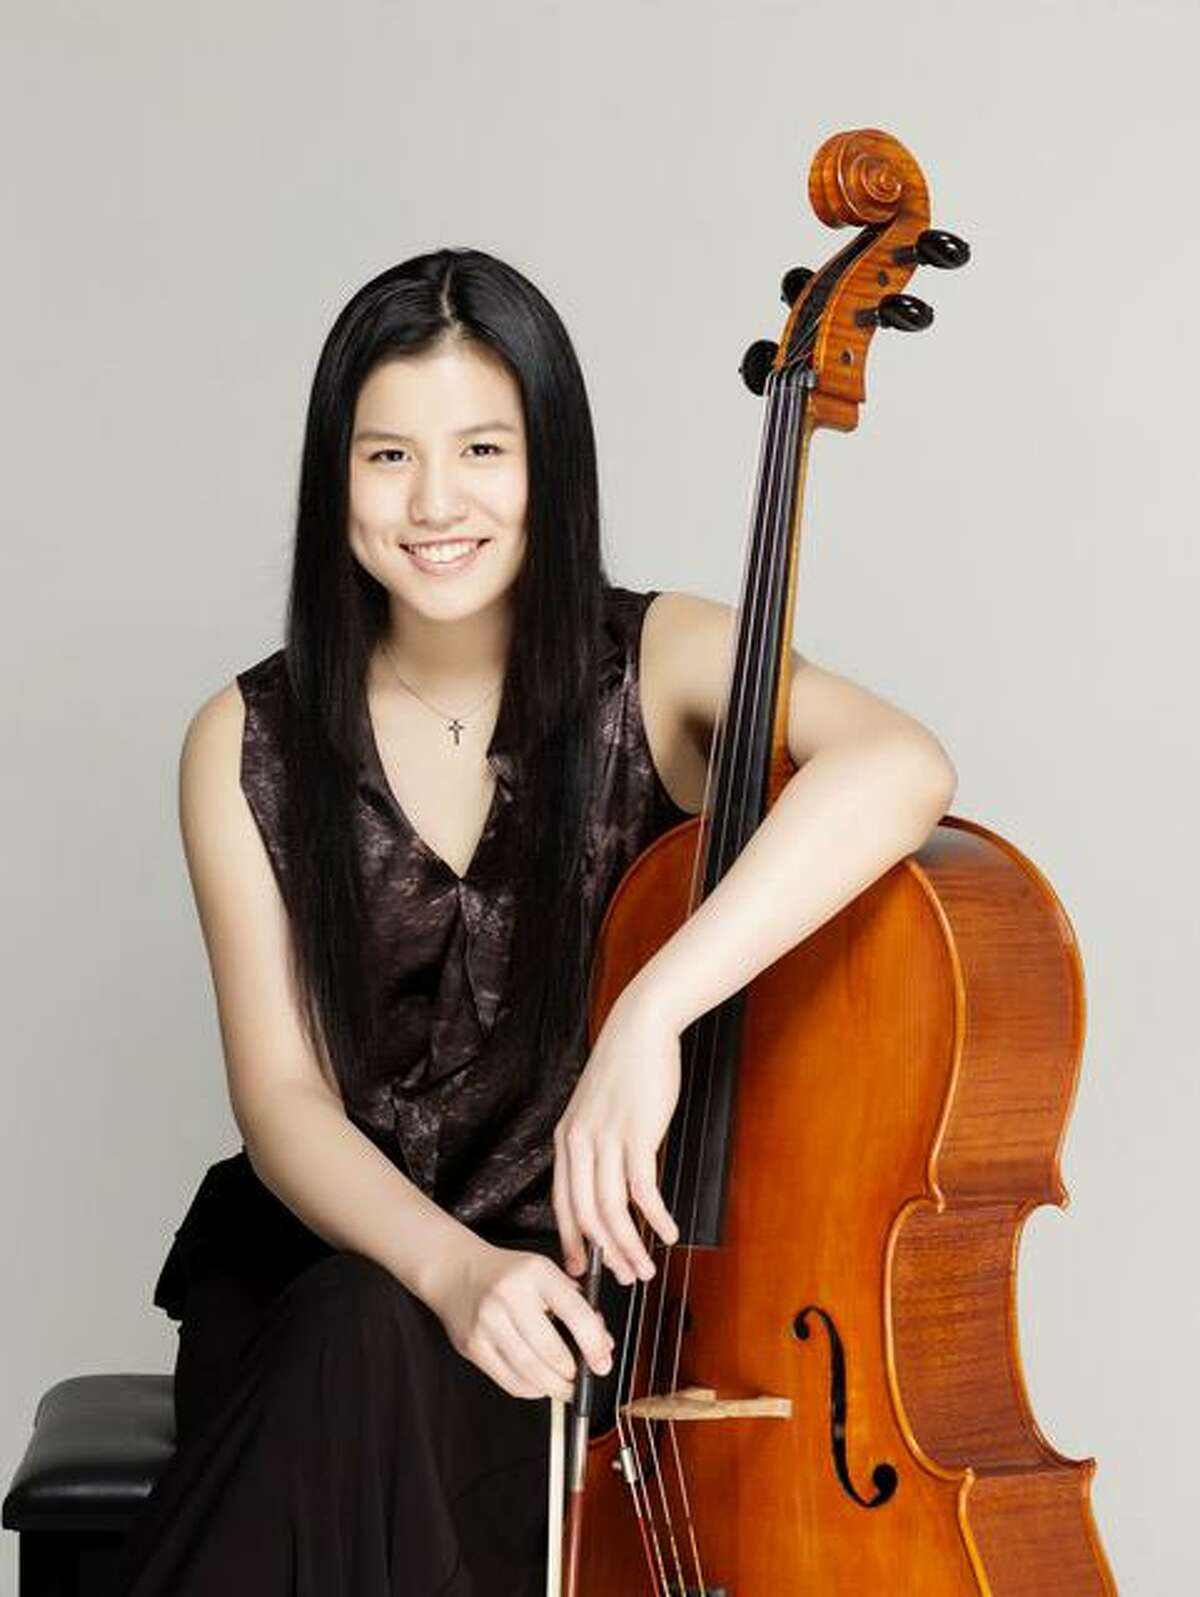 The Women's Forum of Litchfield welcomes Yale music students, cellist Yun Han, above, and pianist Yun Janice Lu for a concert of holiday music at St. Michael's Parish, 25 South St., Litchfield, on Dec. 5.